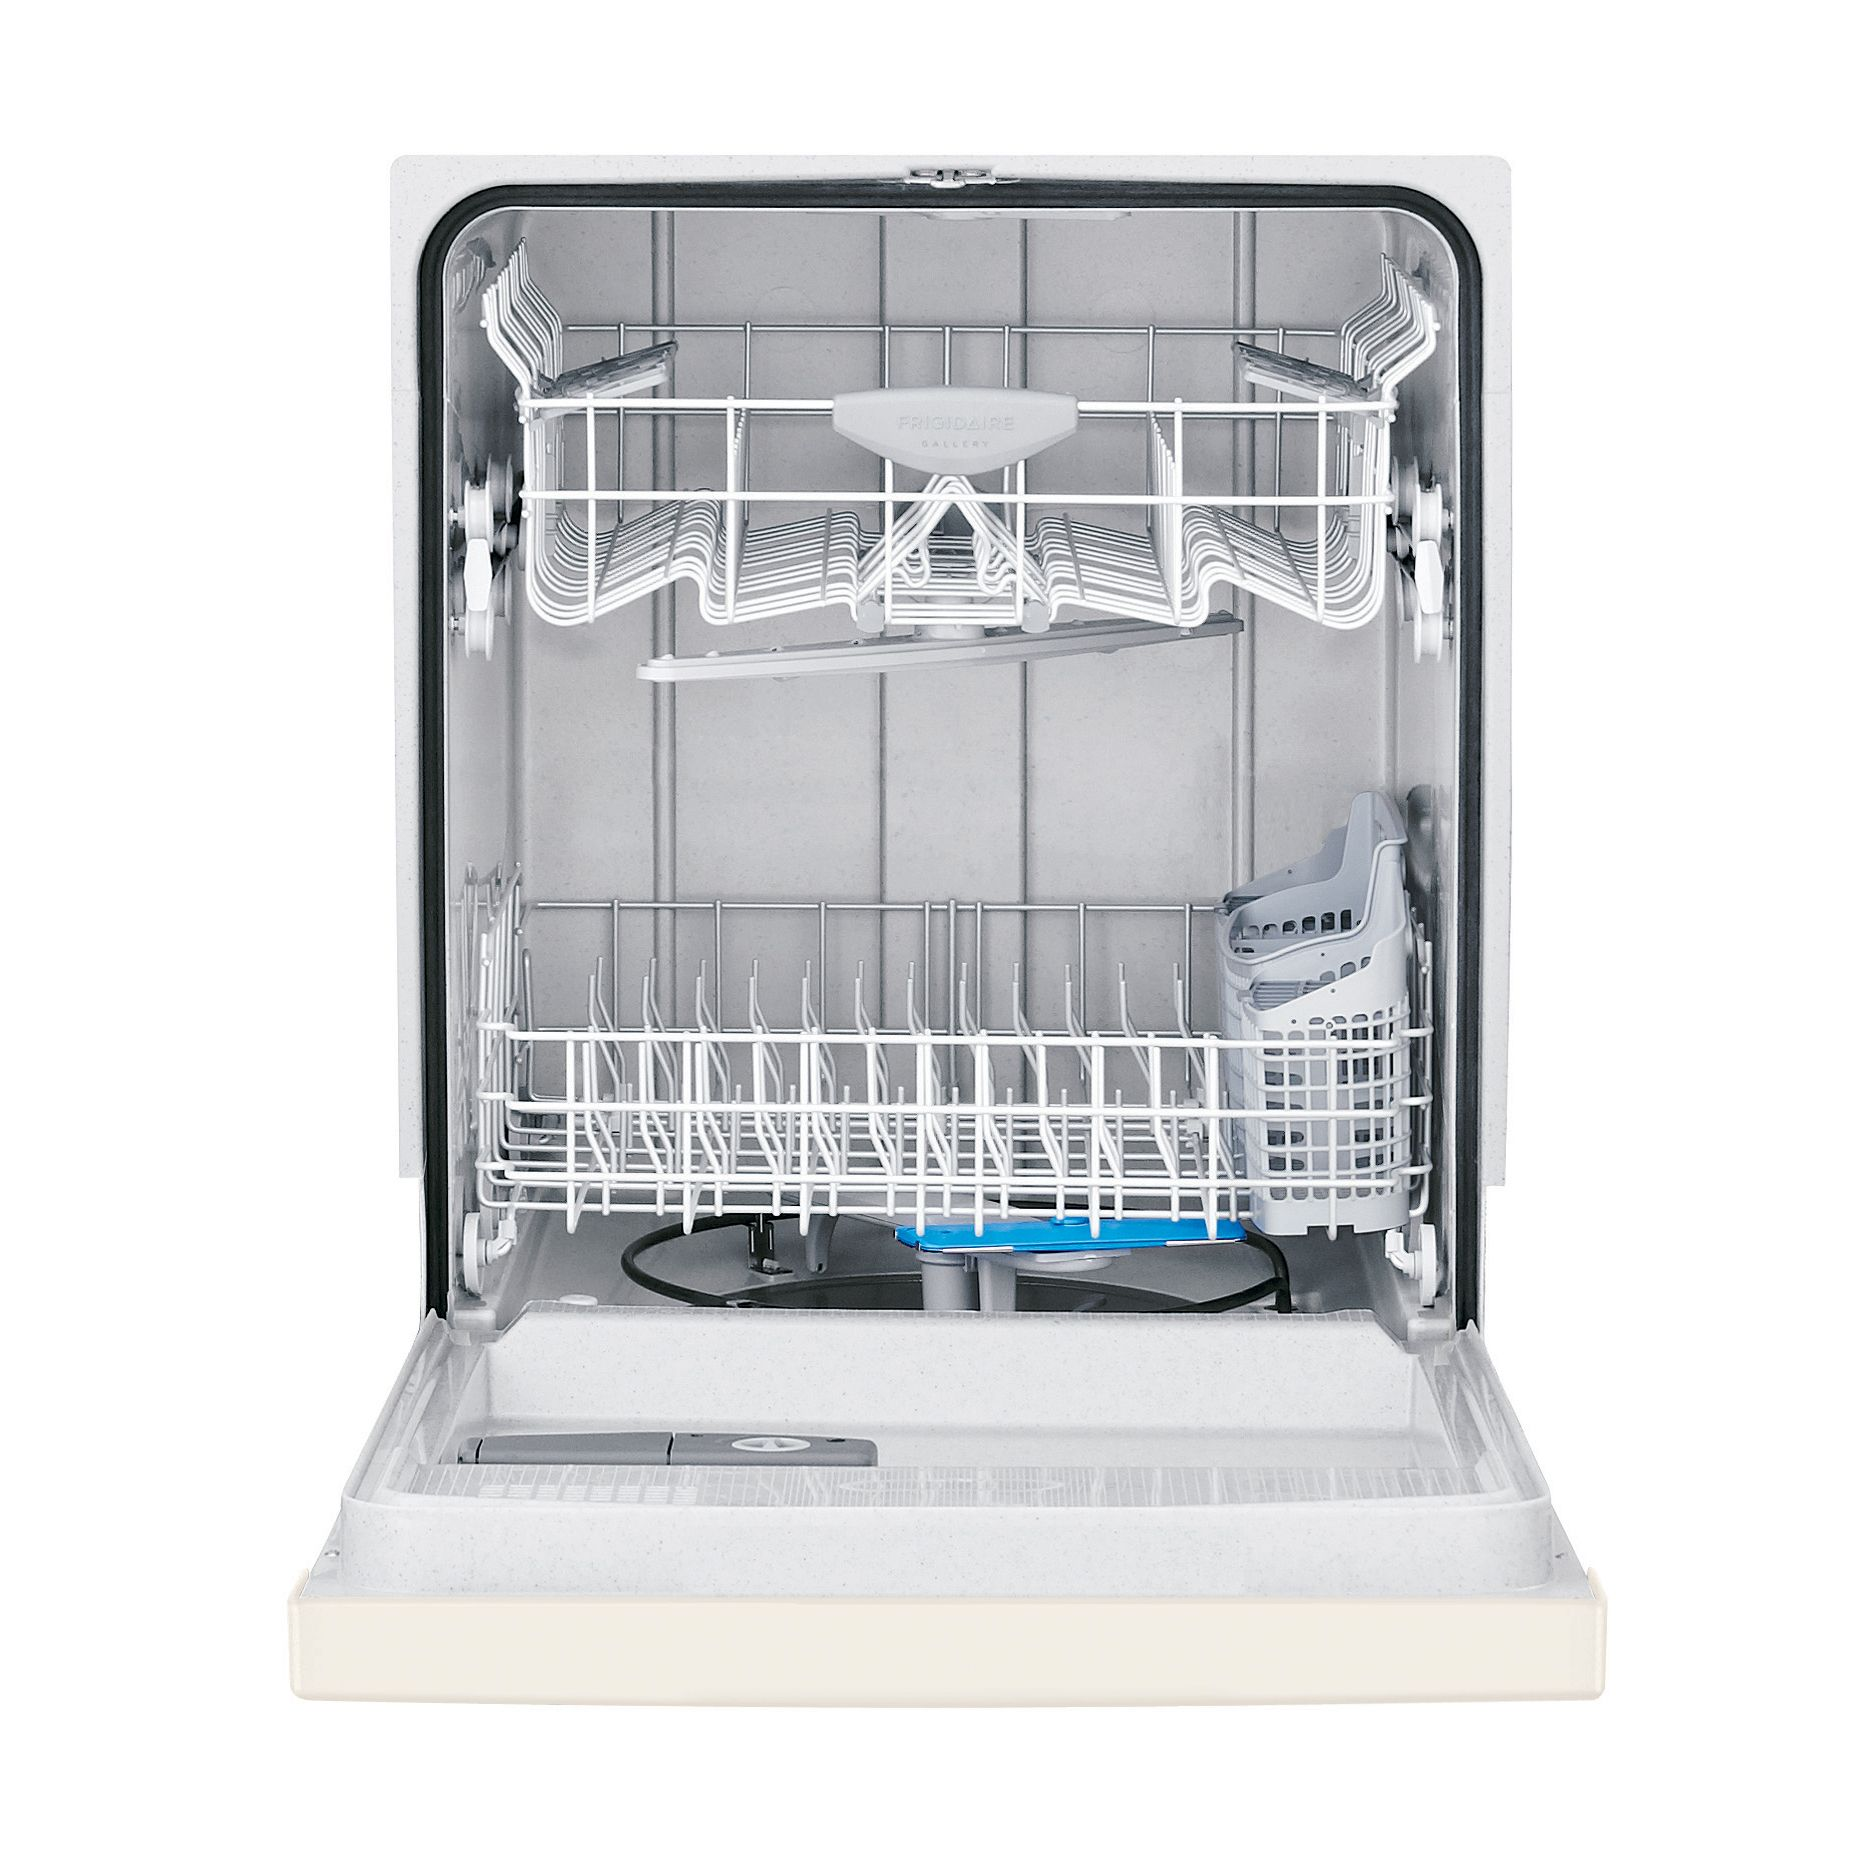 Frigidaire FGBD2445NQ 24'' Built-In Dishwasher - Bisque